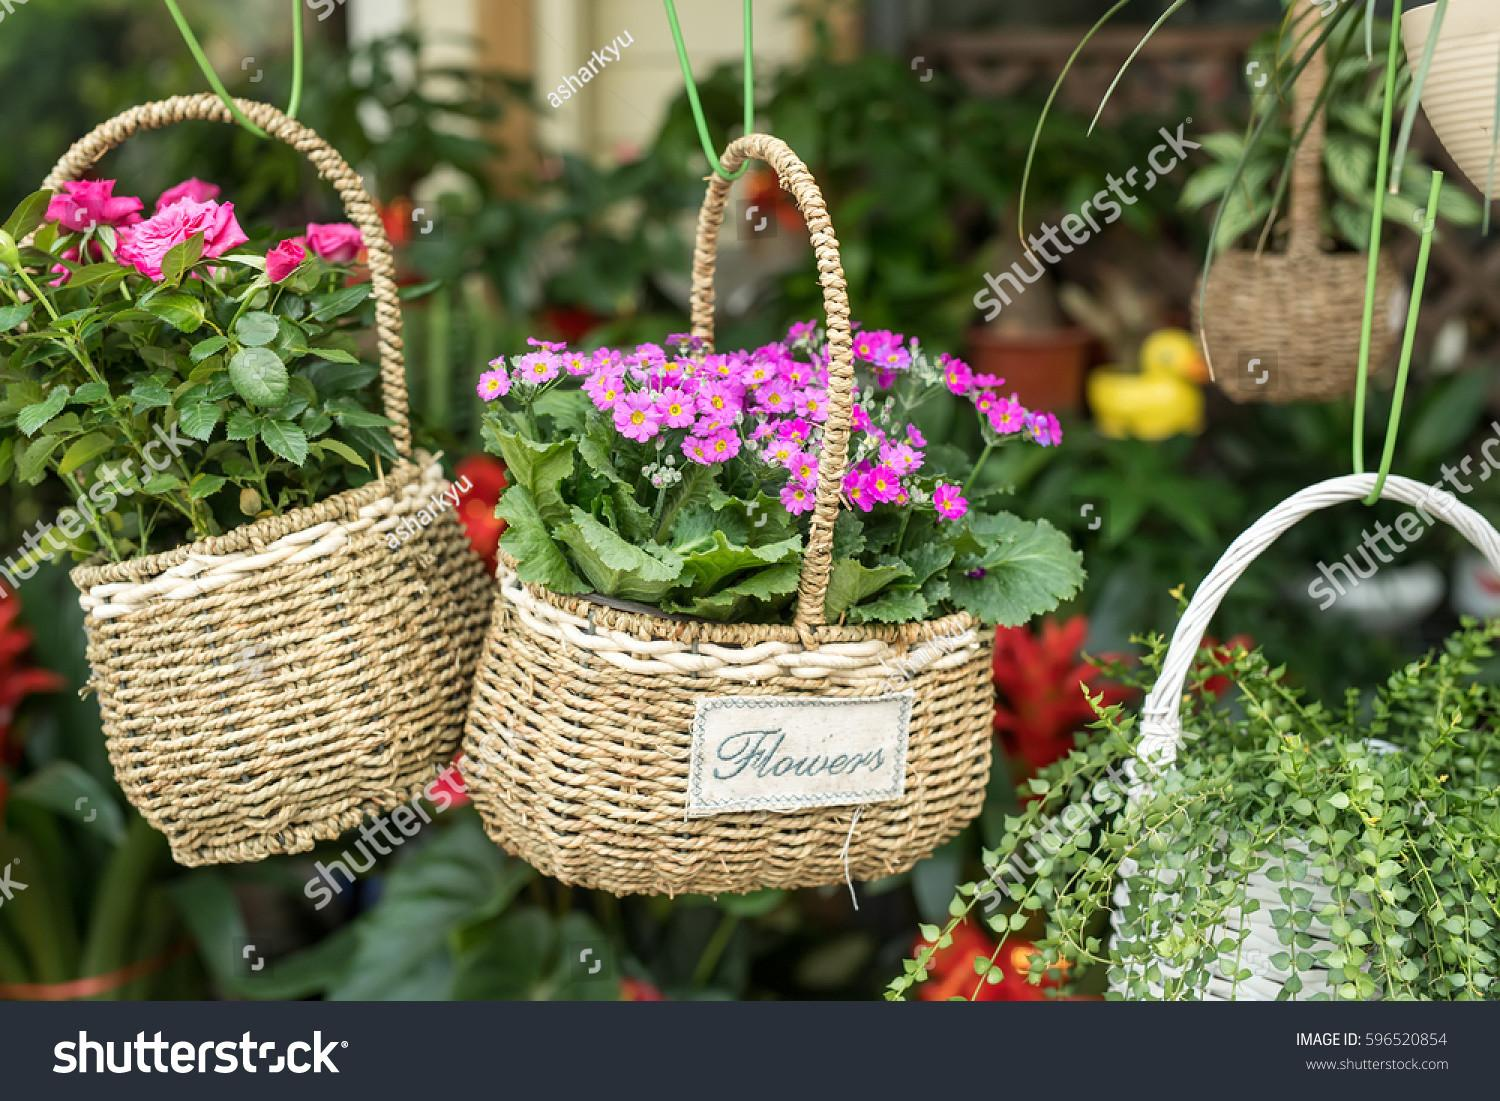 Colorful Flowers Basket Hanging Garden Centre Stock